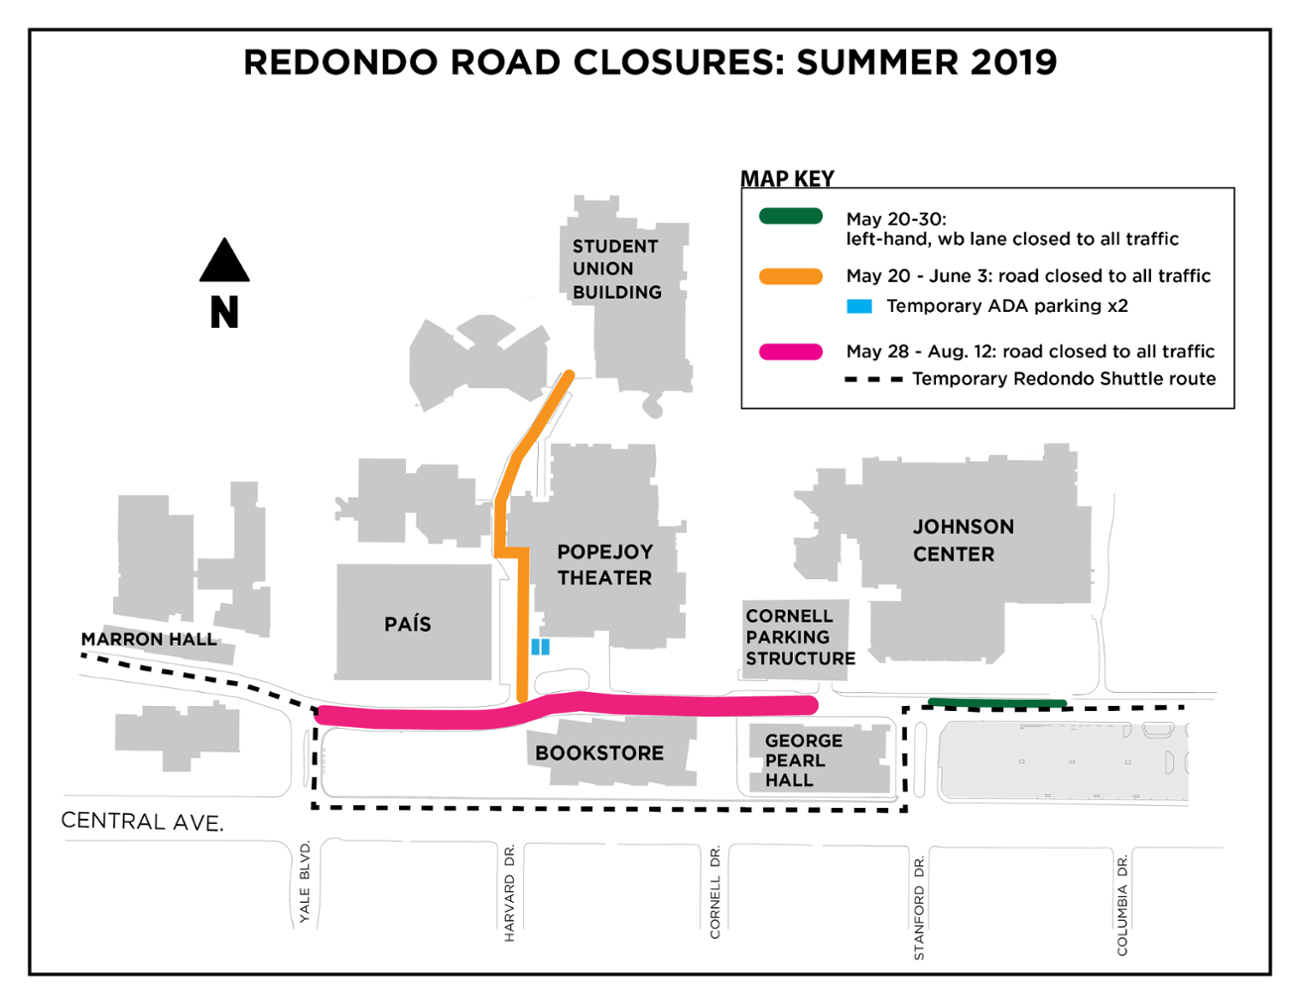 Map of summer 2019 redondo road closures